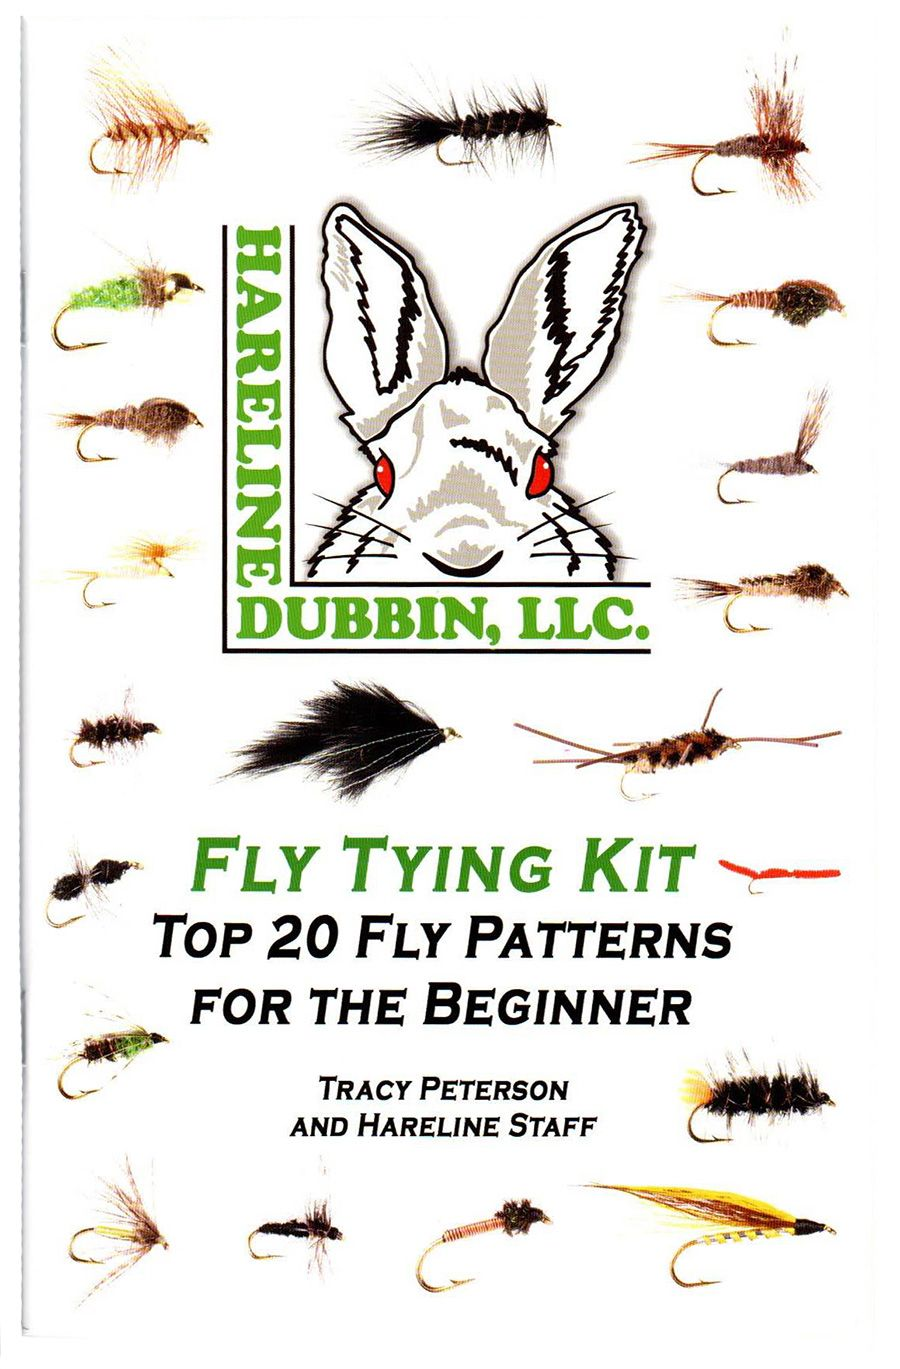 Hareline's Beginner Kit Book